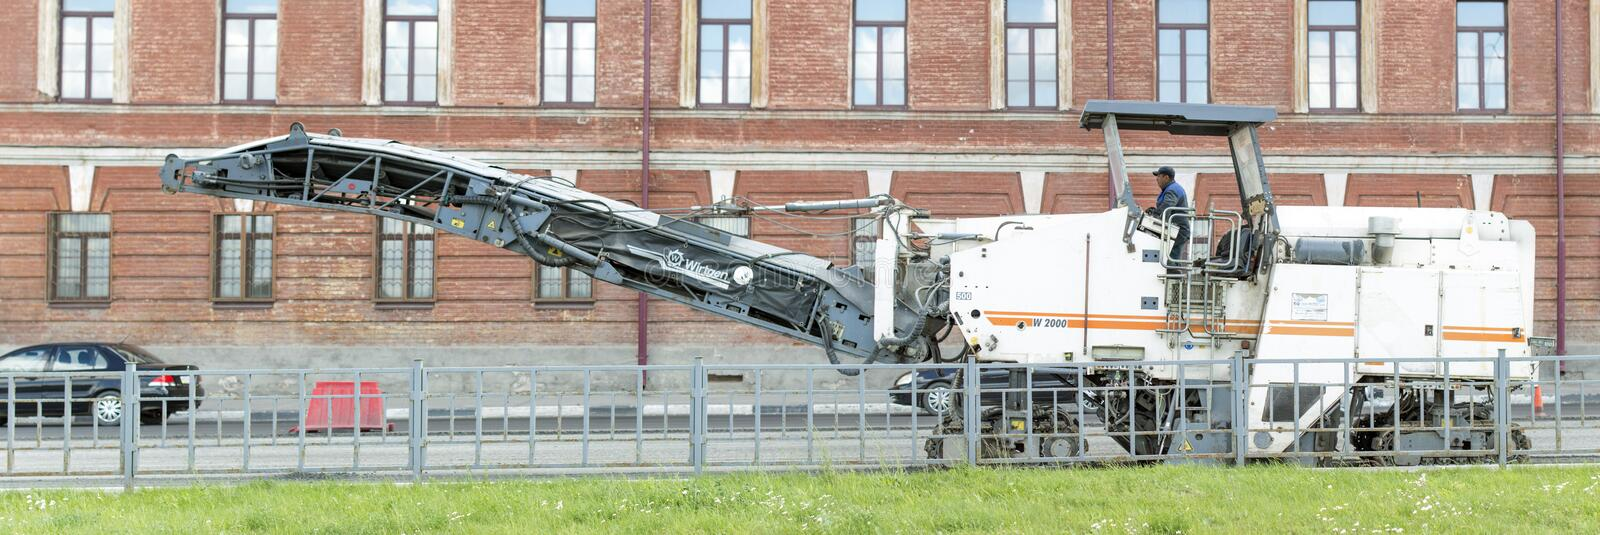 Auto appliances communal services of the city. The Auto appliances for collecting old asphalt and loading into the truck kamaz. NIZHNY NOVGOROD, RUSSIA June 28 stock photo